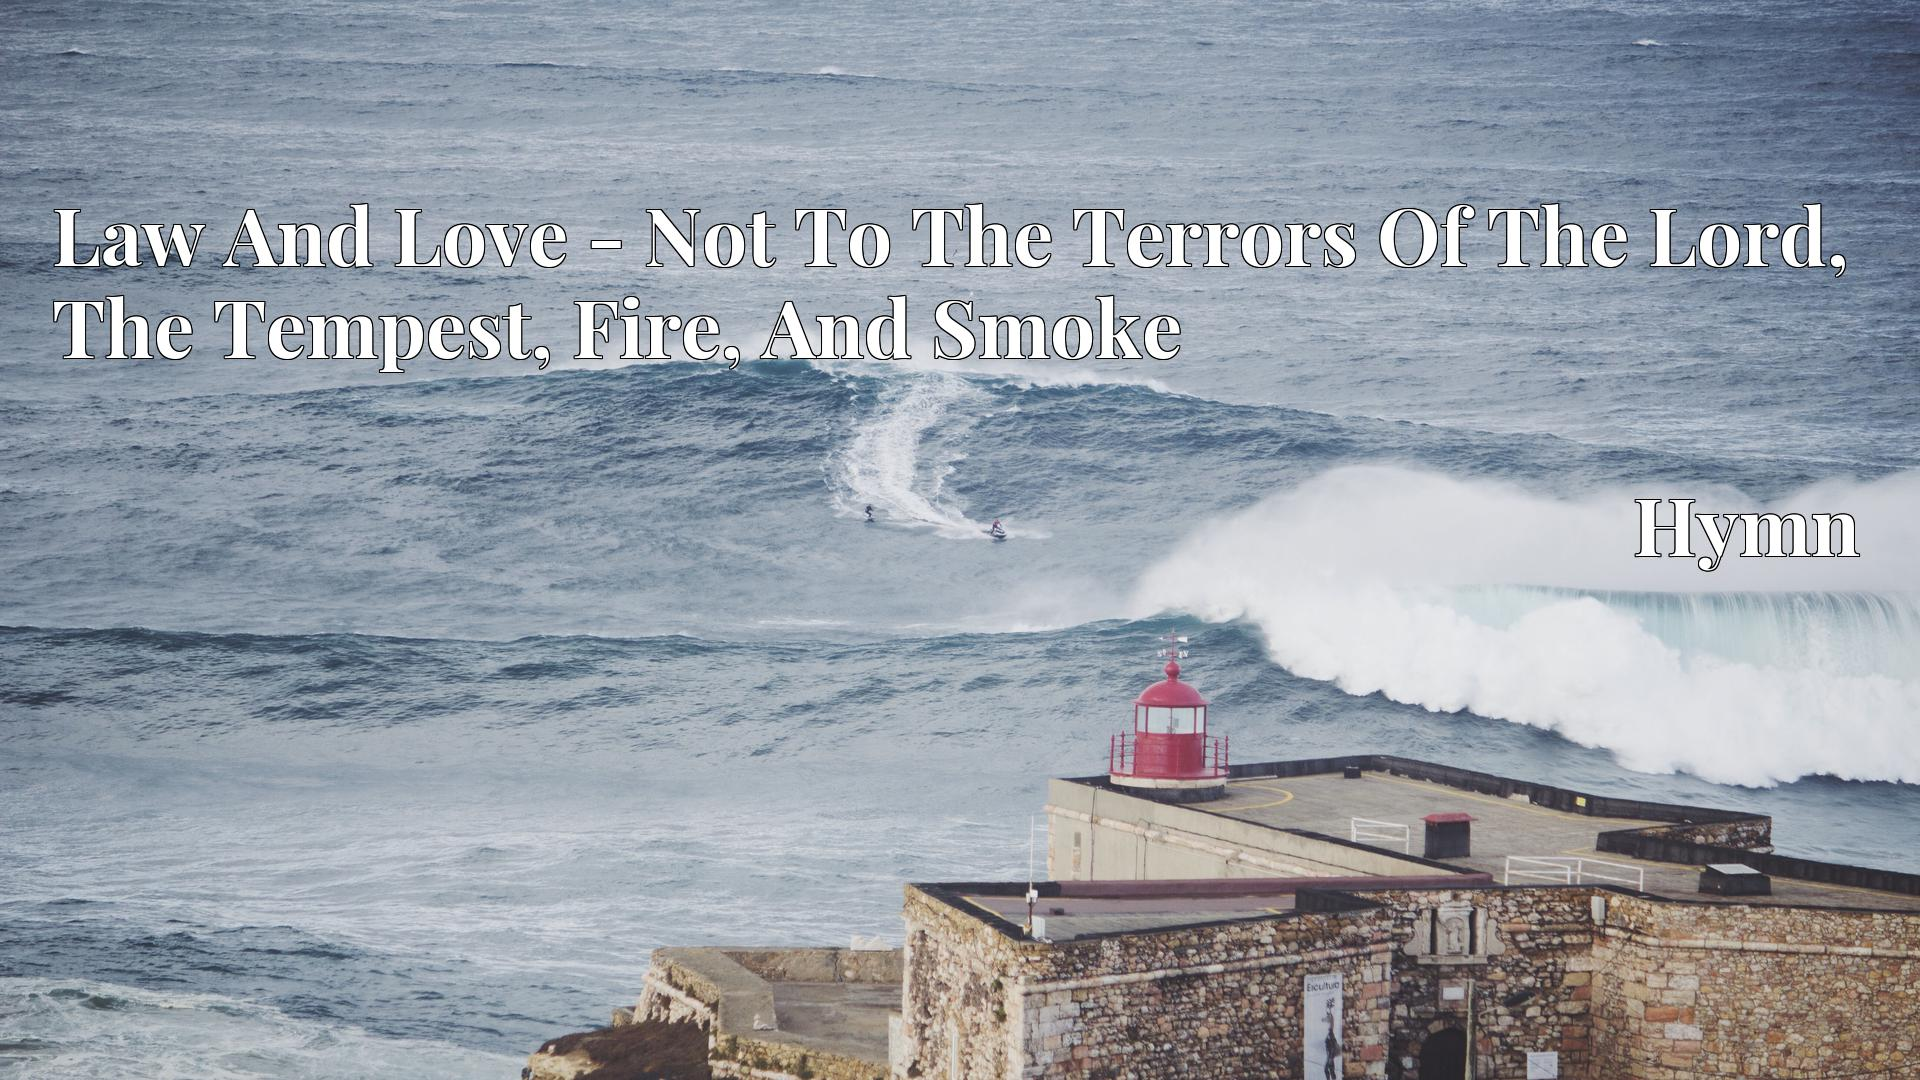 Law And Love - Not To The Terrors Of The Lord, The Tempest, Fire, And Smoke - Hymn